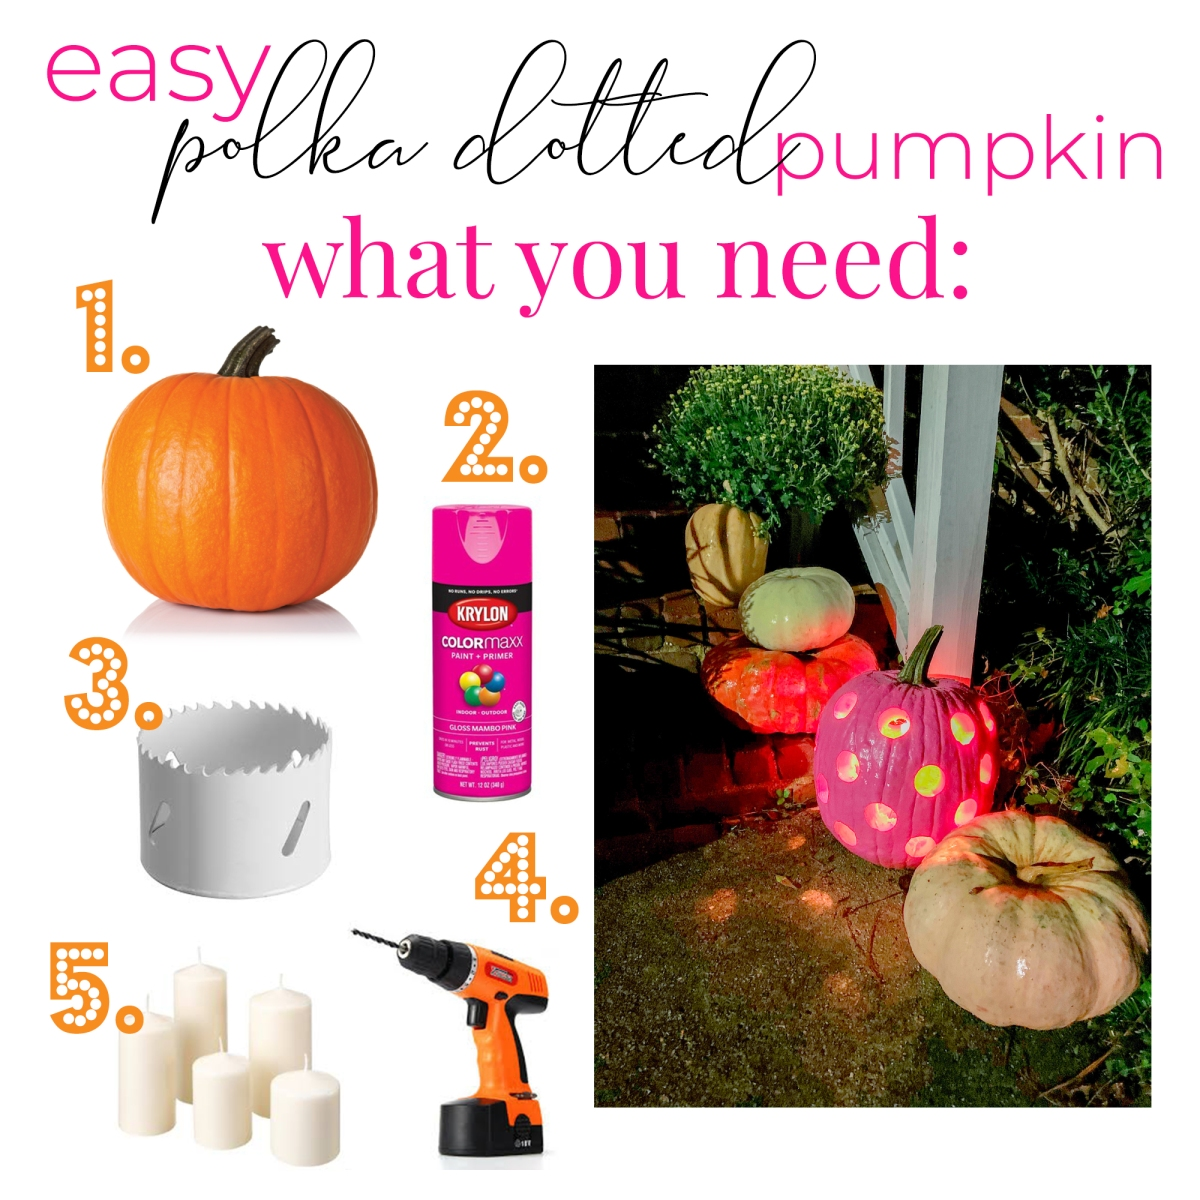 Make a Polka Dotted Pumpkin